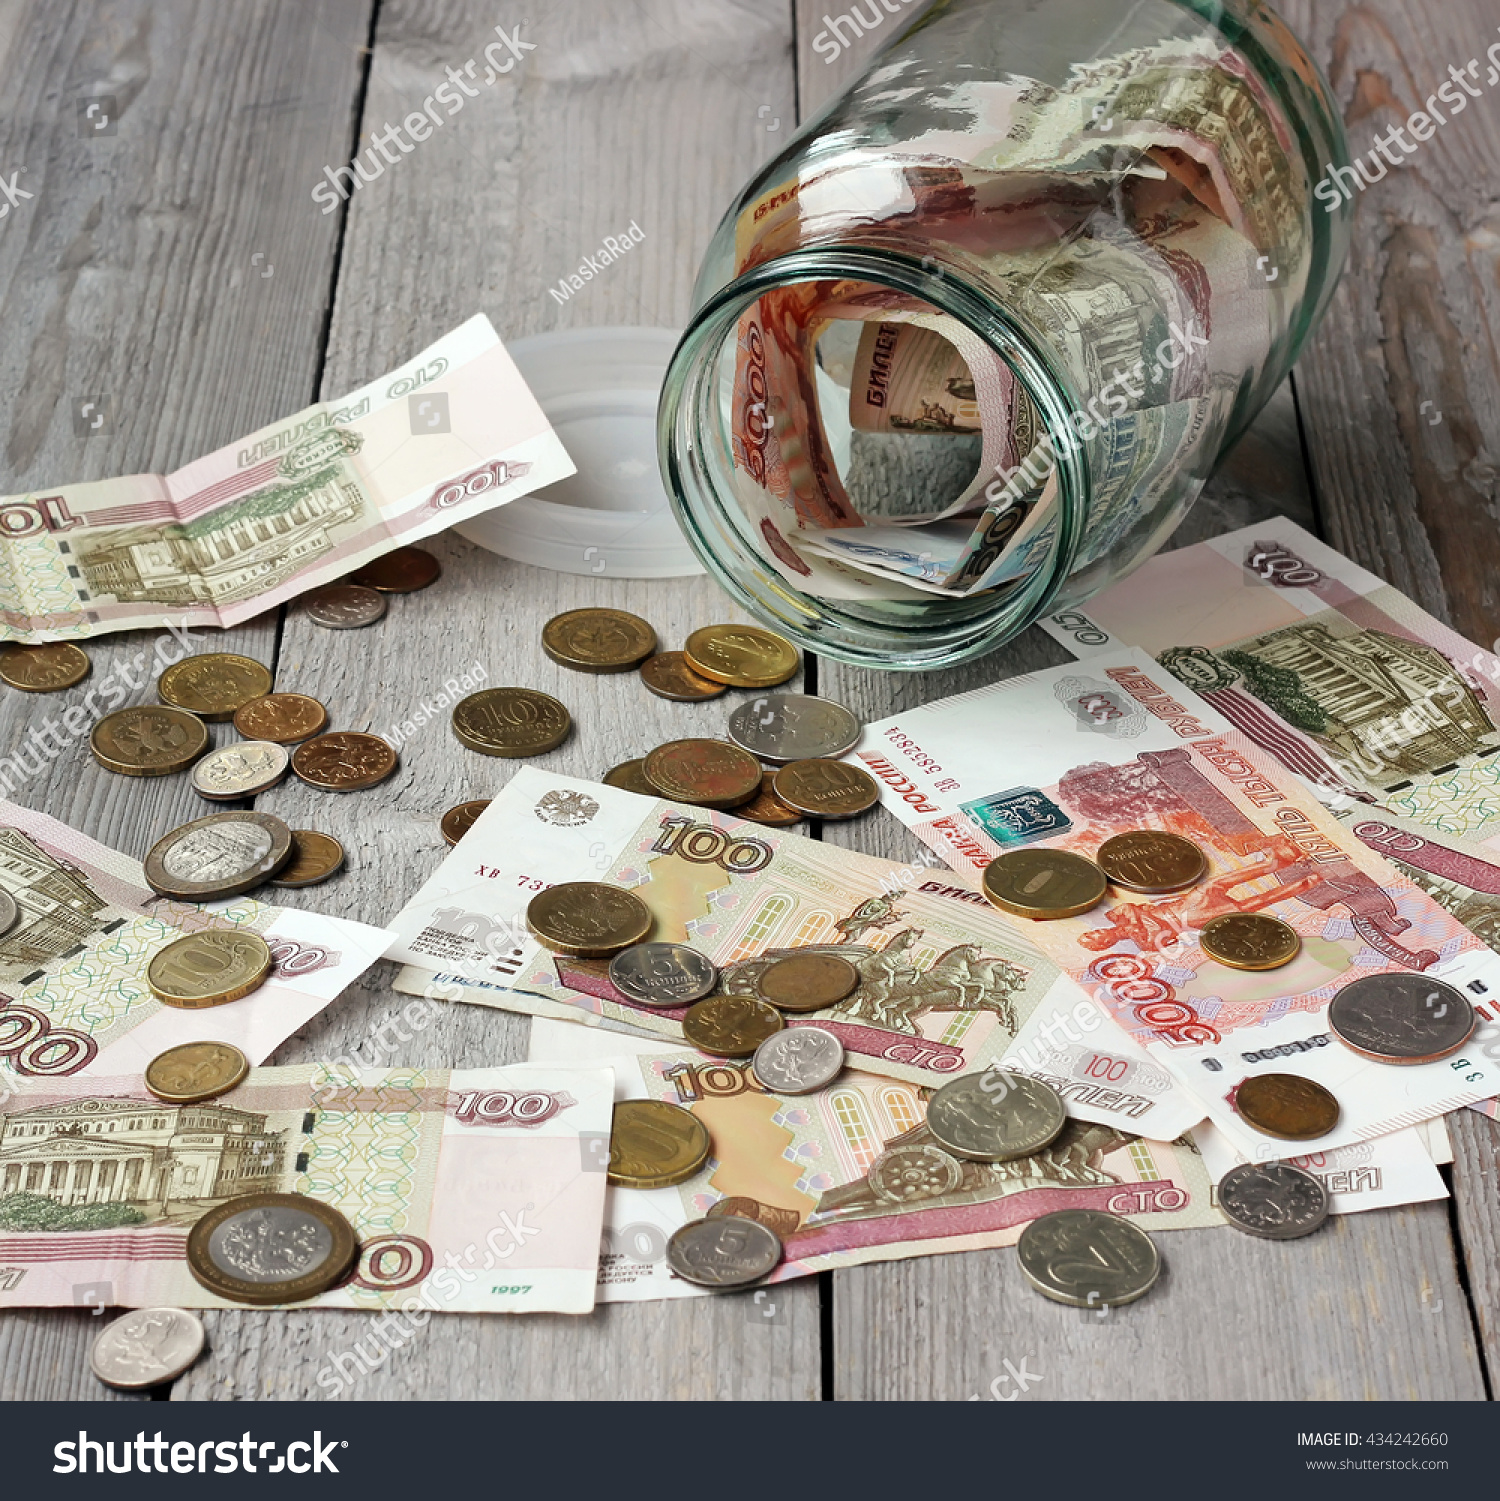 money paper It only has value because the government tell us it does, but throughout history,  the sham of paper money backed by nothing slowly reveals.